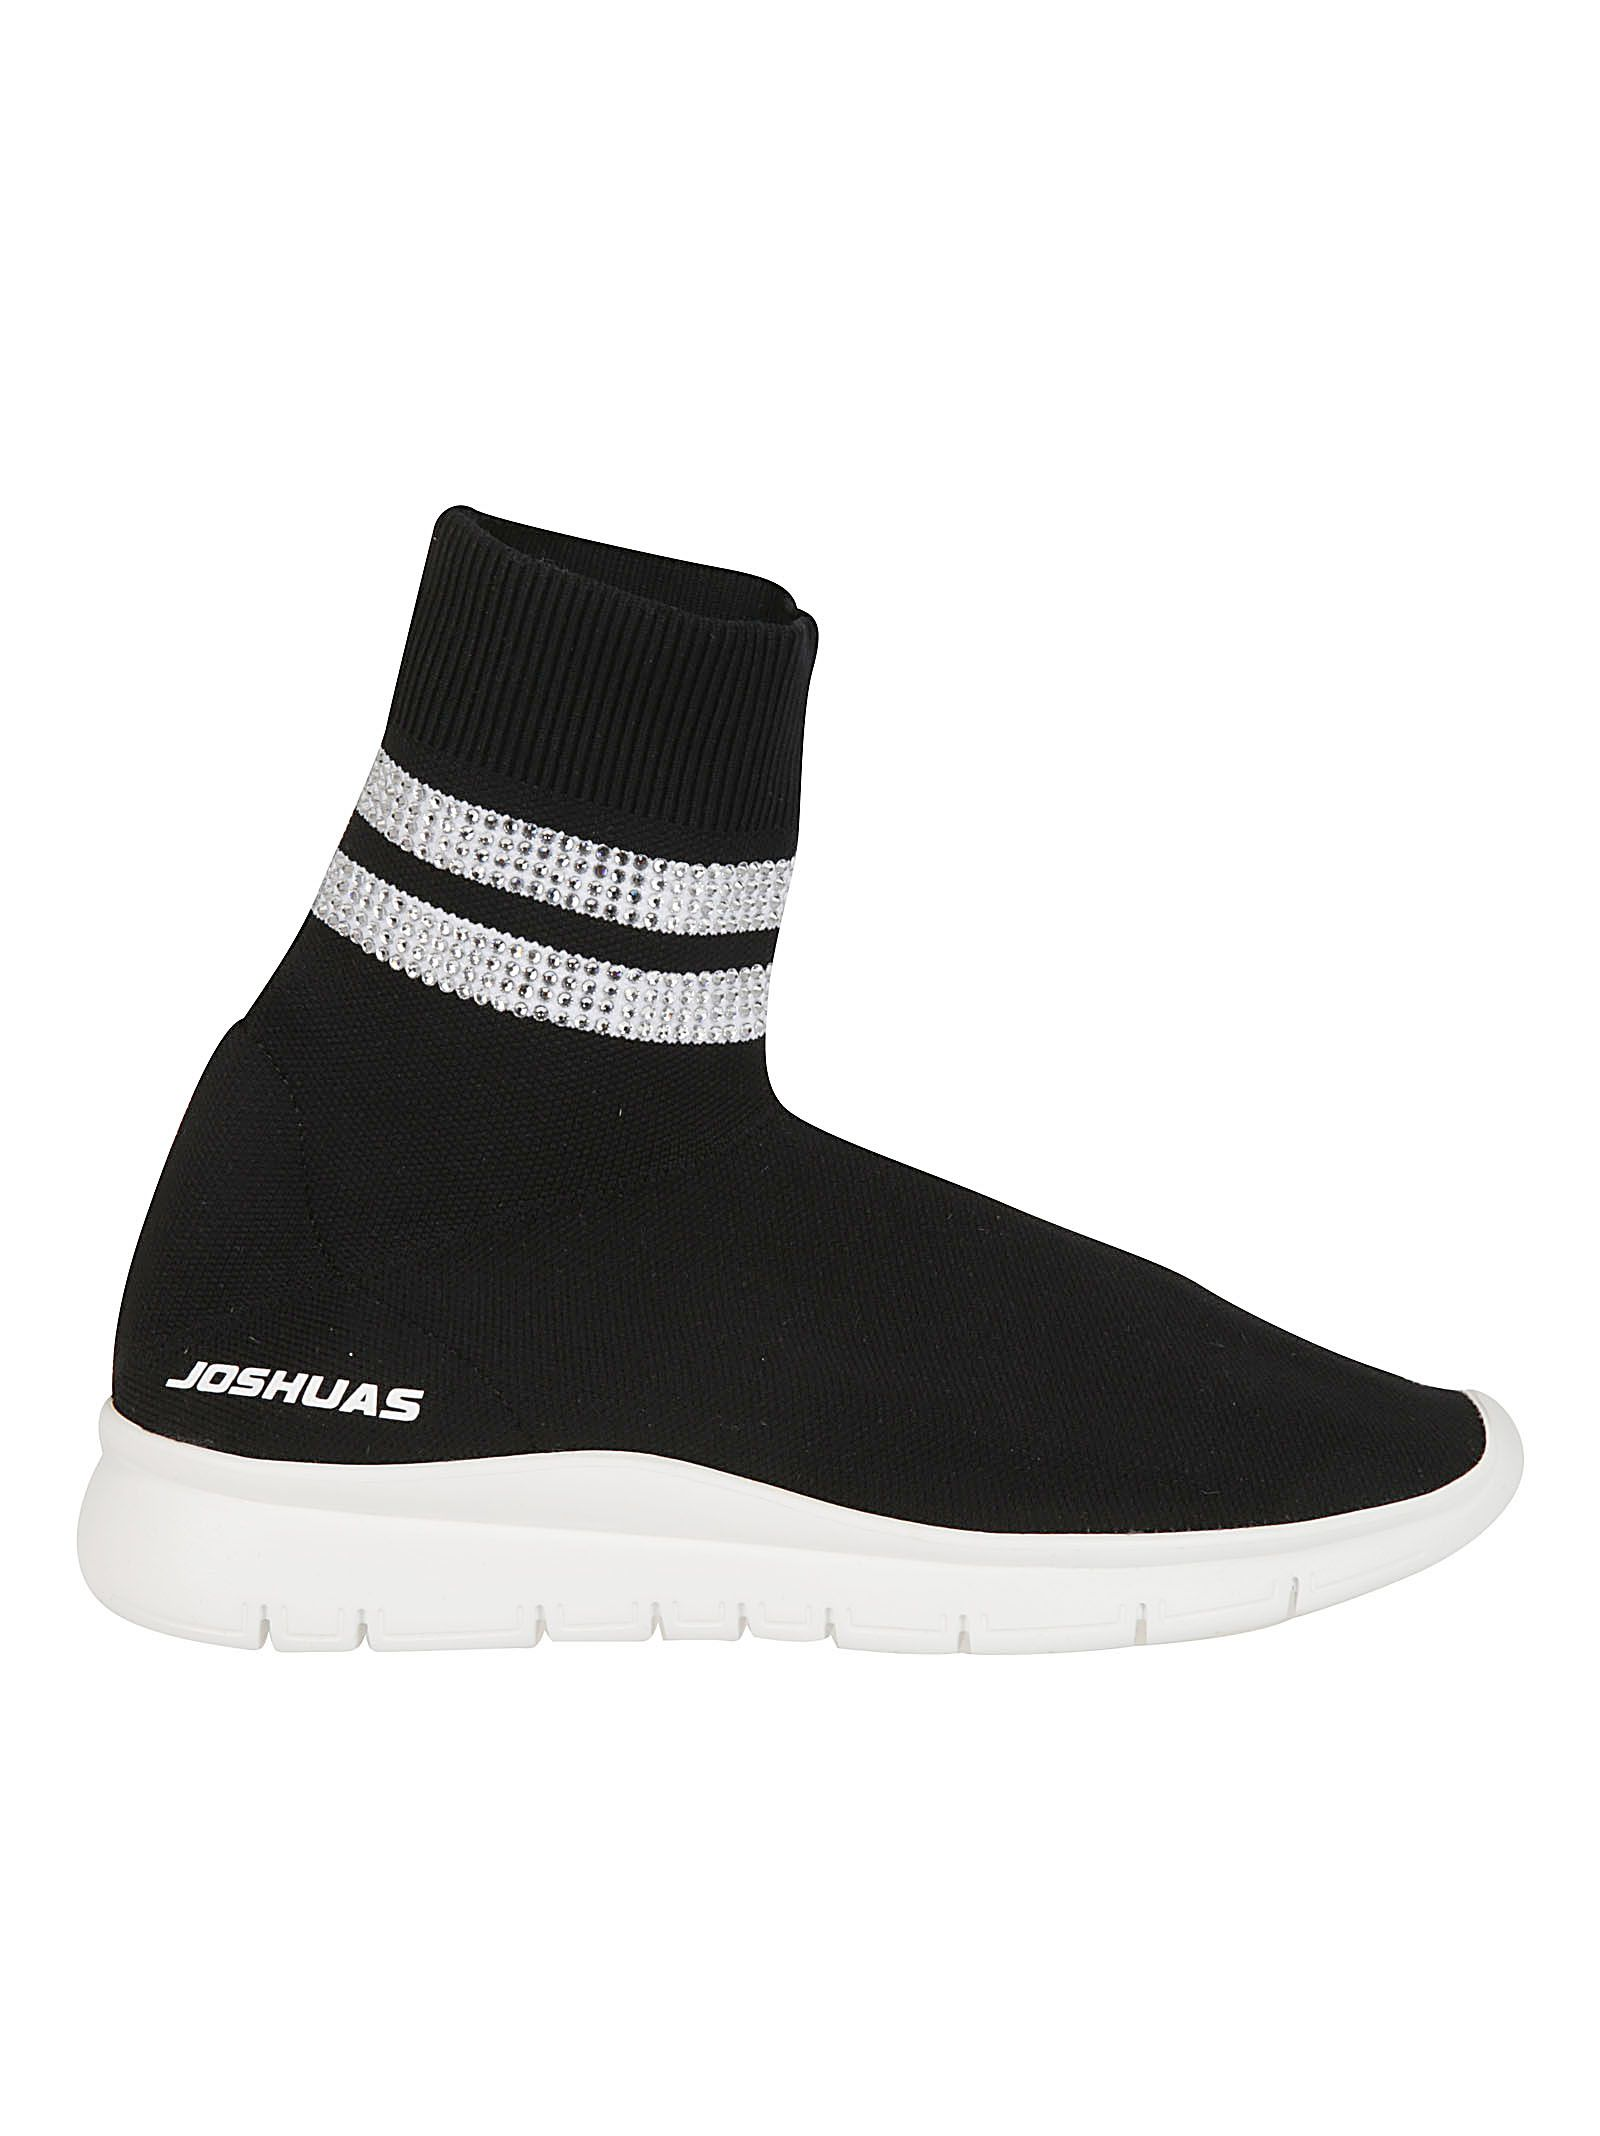 Joshua Sanders Sock Hi-top Sneakers